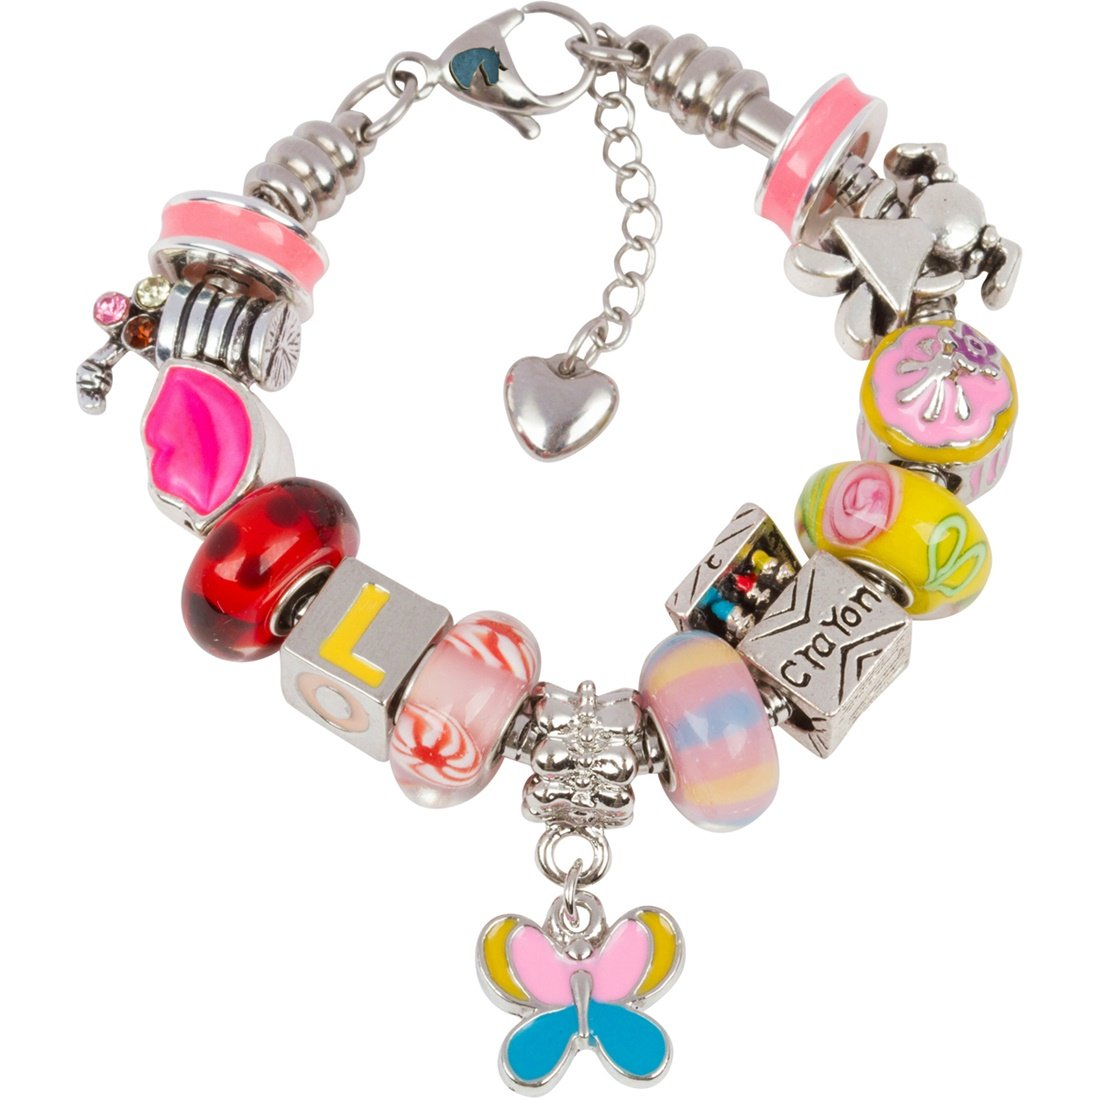 Timeline Treasures European Charm Bracelet With Charms For Girls, Stainless Steel Snake Chain, Back To School, Pink 7.5 Inch (19cm)